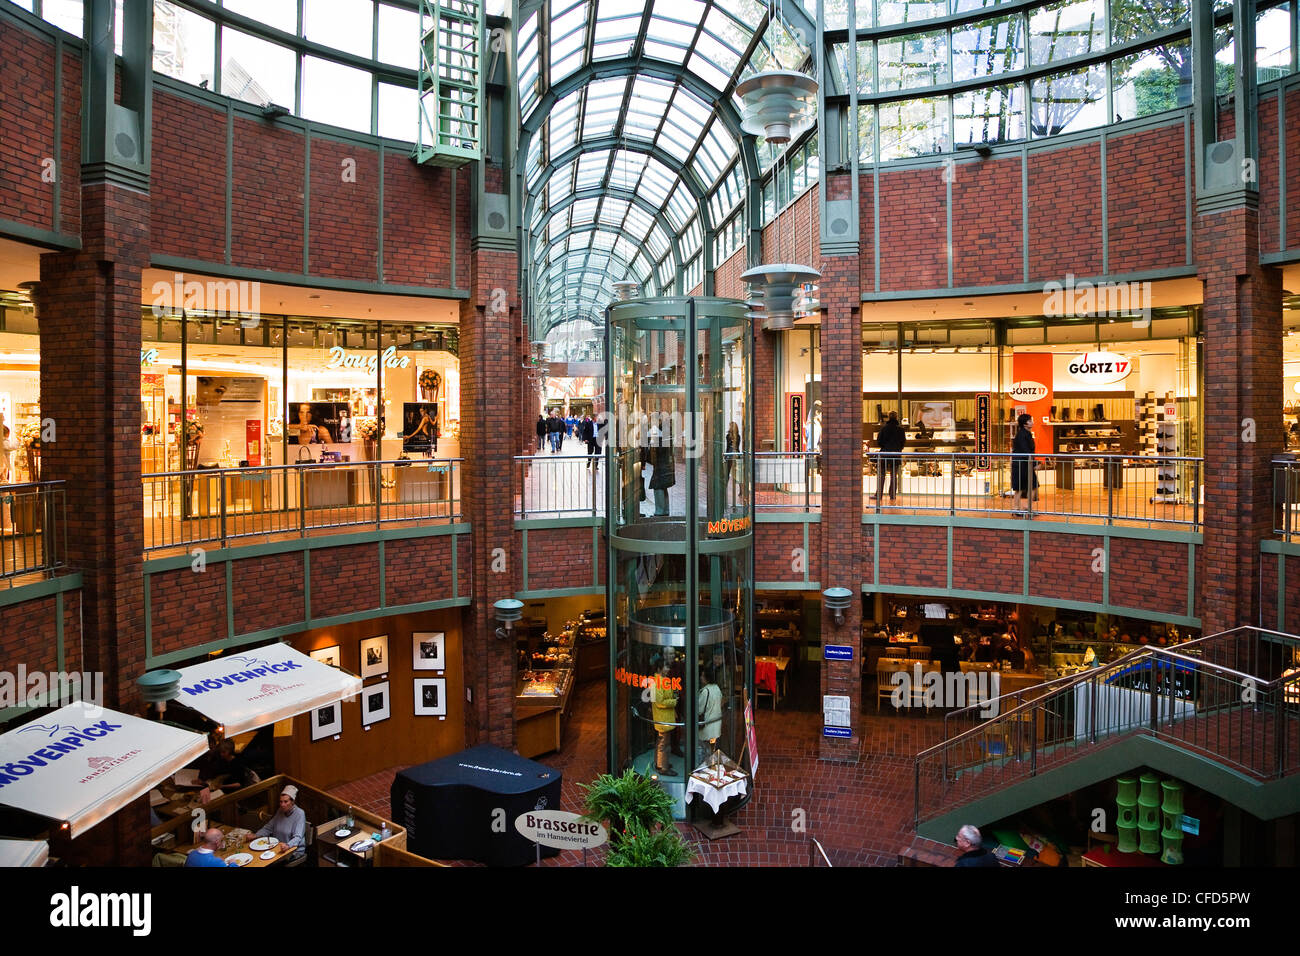 illuminated shops at a shopping center hanse viertel hamburg stock photo royalty free image. Black Bedroom Furniture Sets. Home Design Ideas